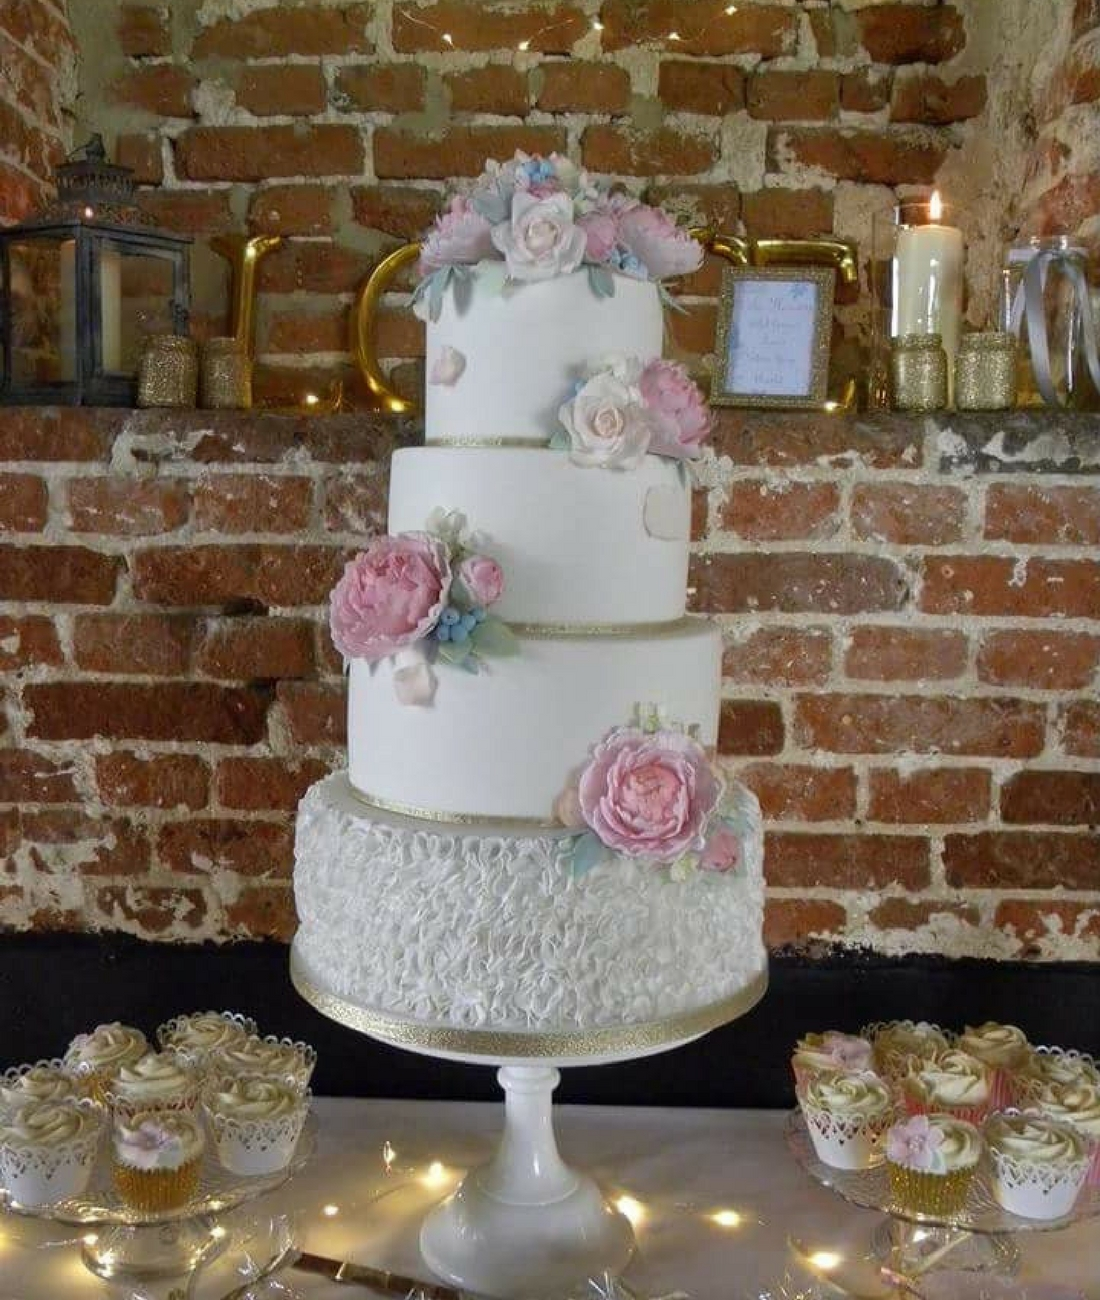 Love Artisan Wedding Cakes - Four Tier Floral White Ruffles Wedding Cake and Cupcakes